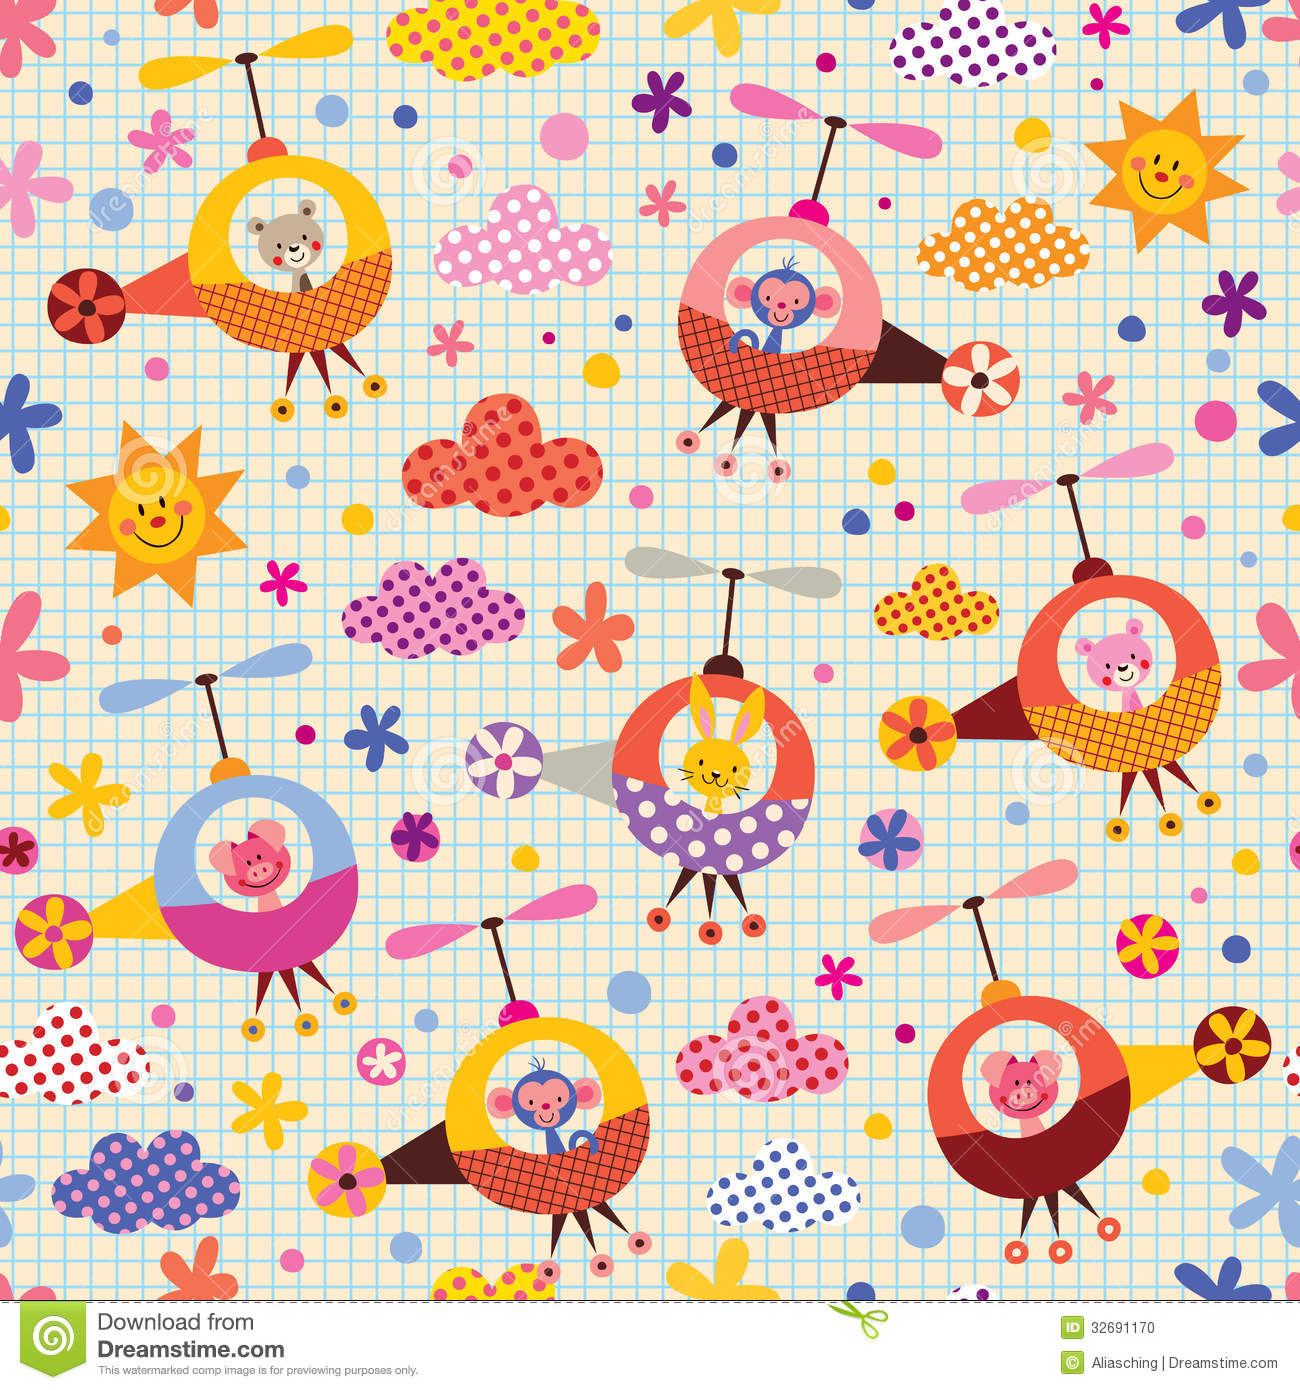 Cute Scrapbook Paper Patterns Cute animals in helicopters